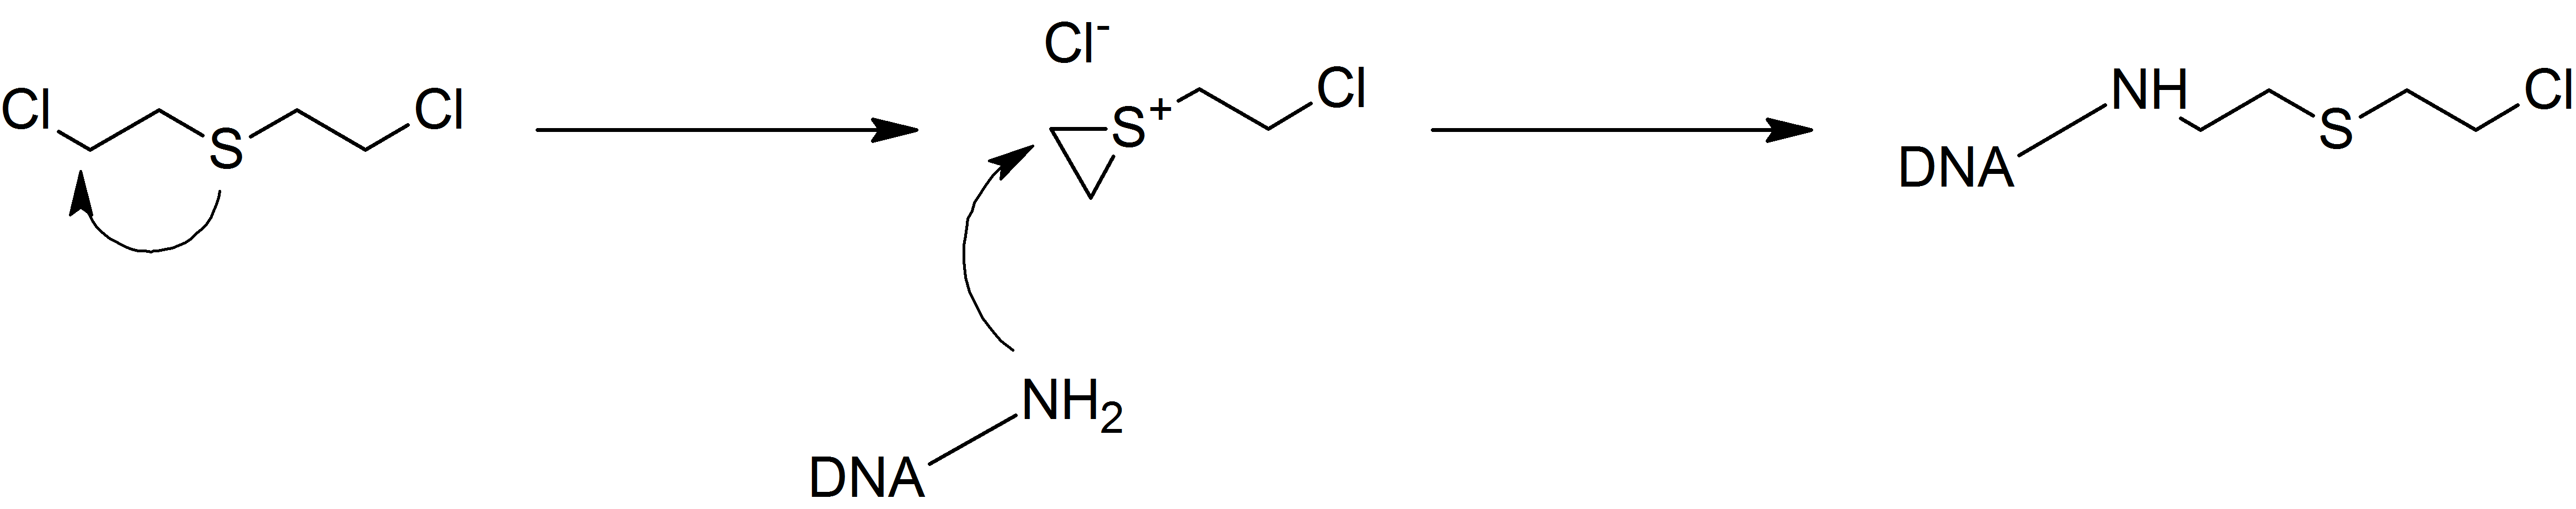 sulfur mustard mustard gas The sulfur mustards, or sulphur mustards, [2] commonly known as mustard gas, are a class of related cytotoxic and vesicant chemical warfare agents with the ability to form large blisters on the exposed skin and in the lungs.